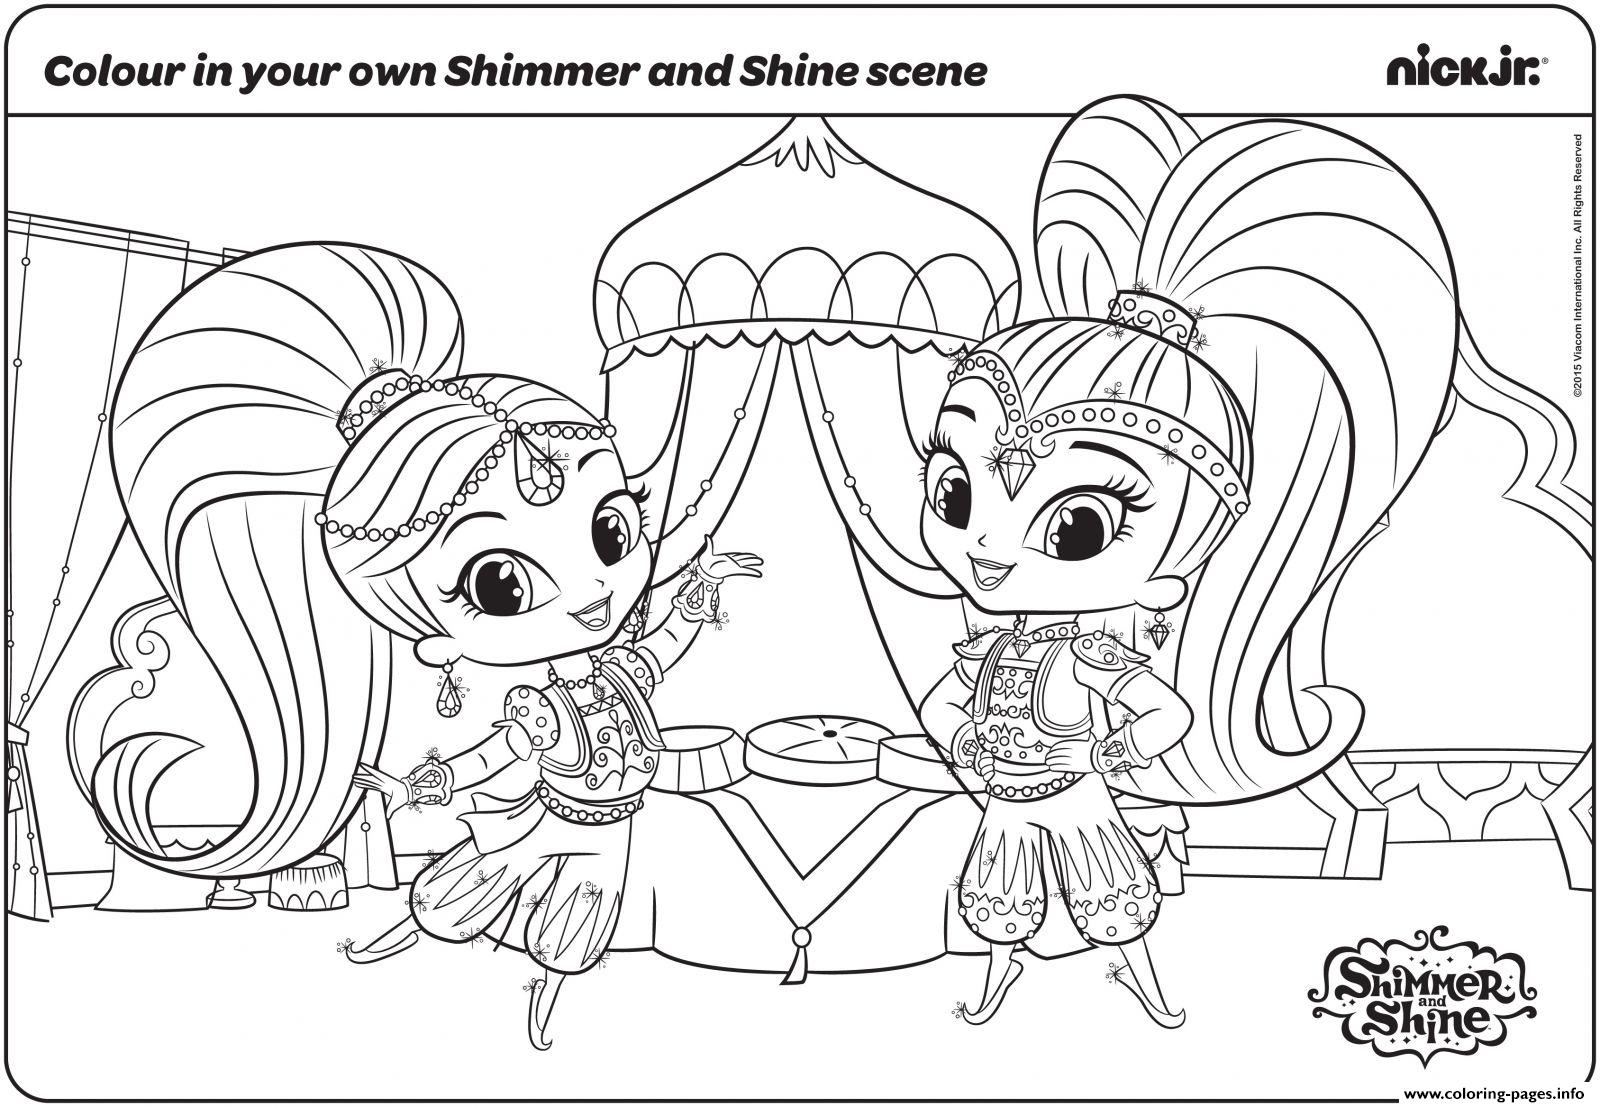 image relating to Shimmer and Shine Coloring Pages Printable referred to as Shimmer And Glow Entertaining With Colouring Web page Coloring Internet pages